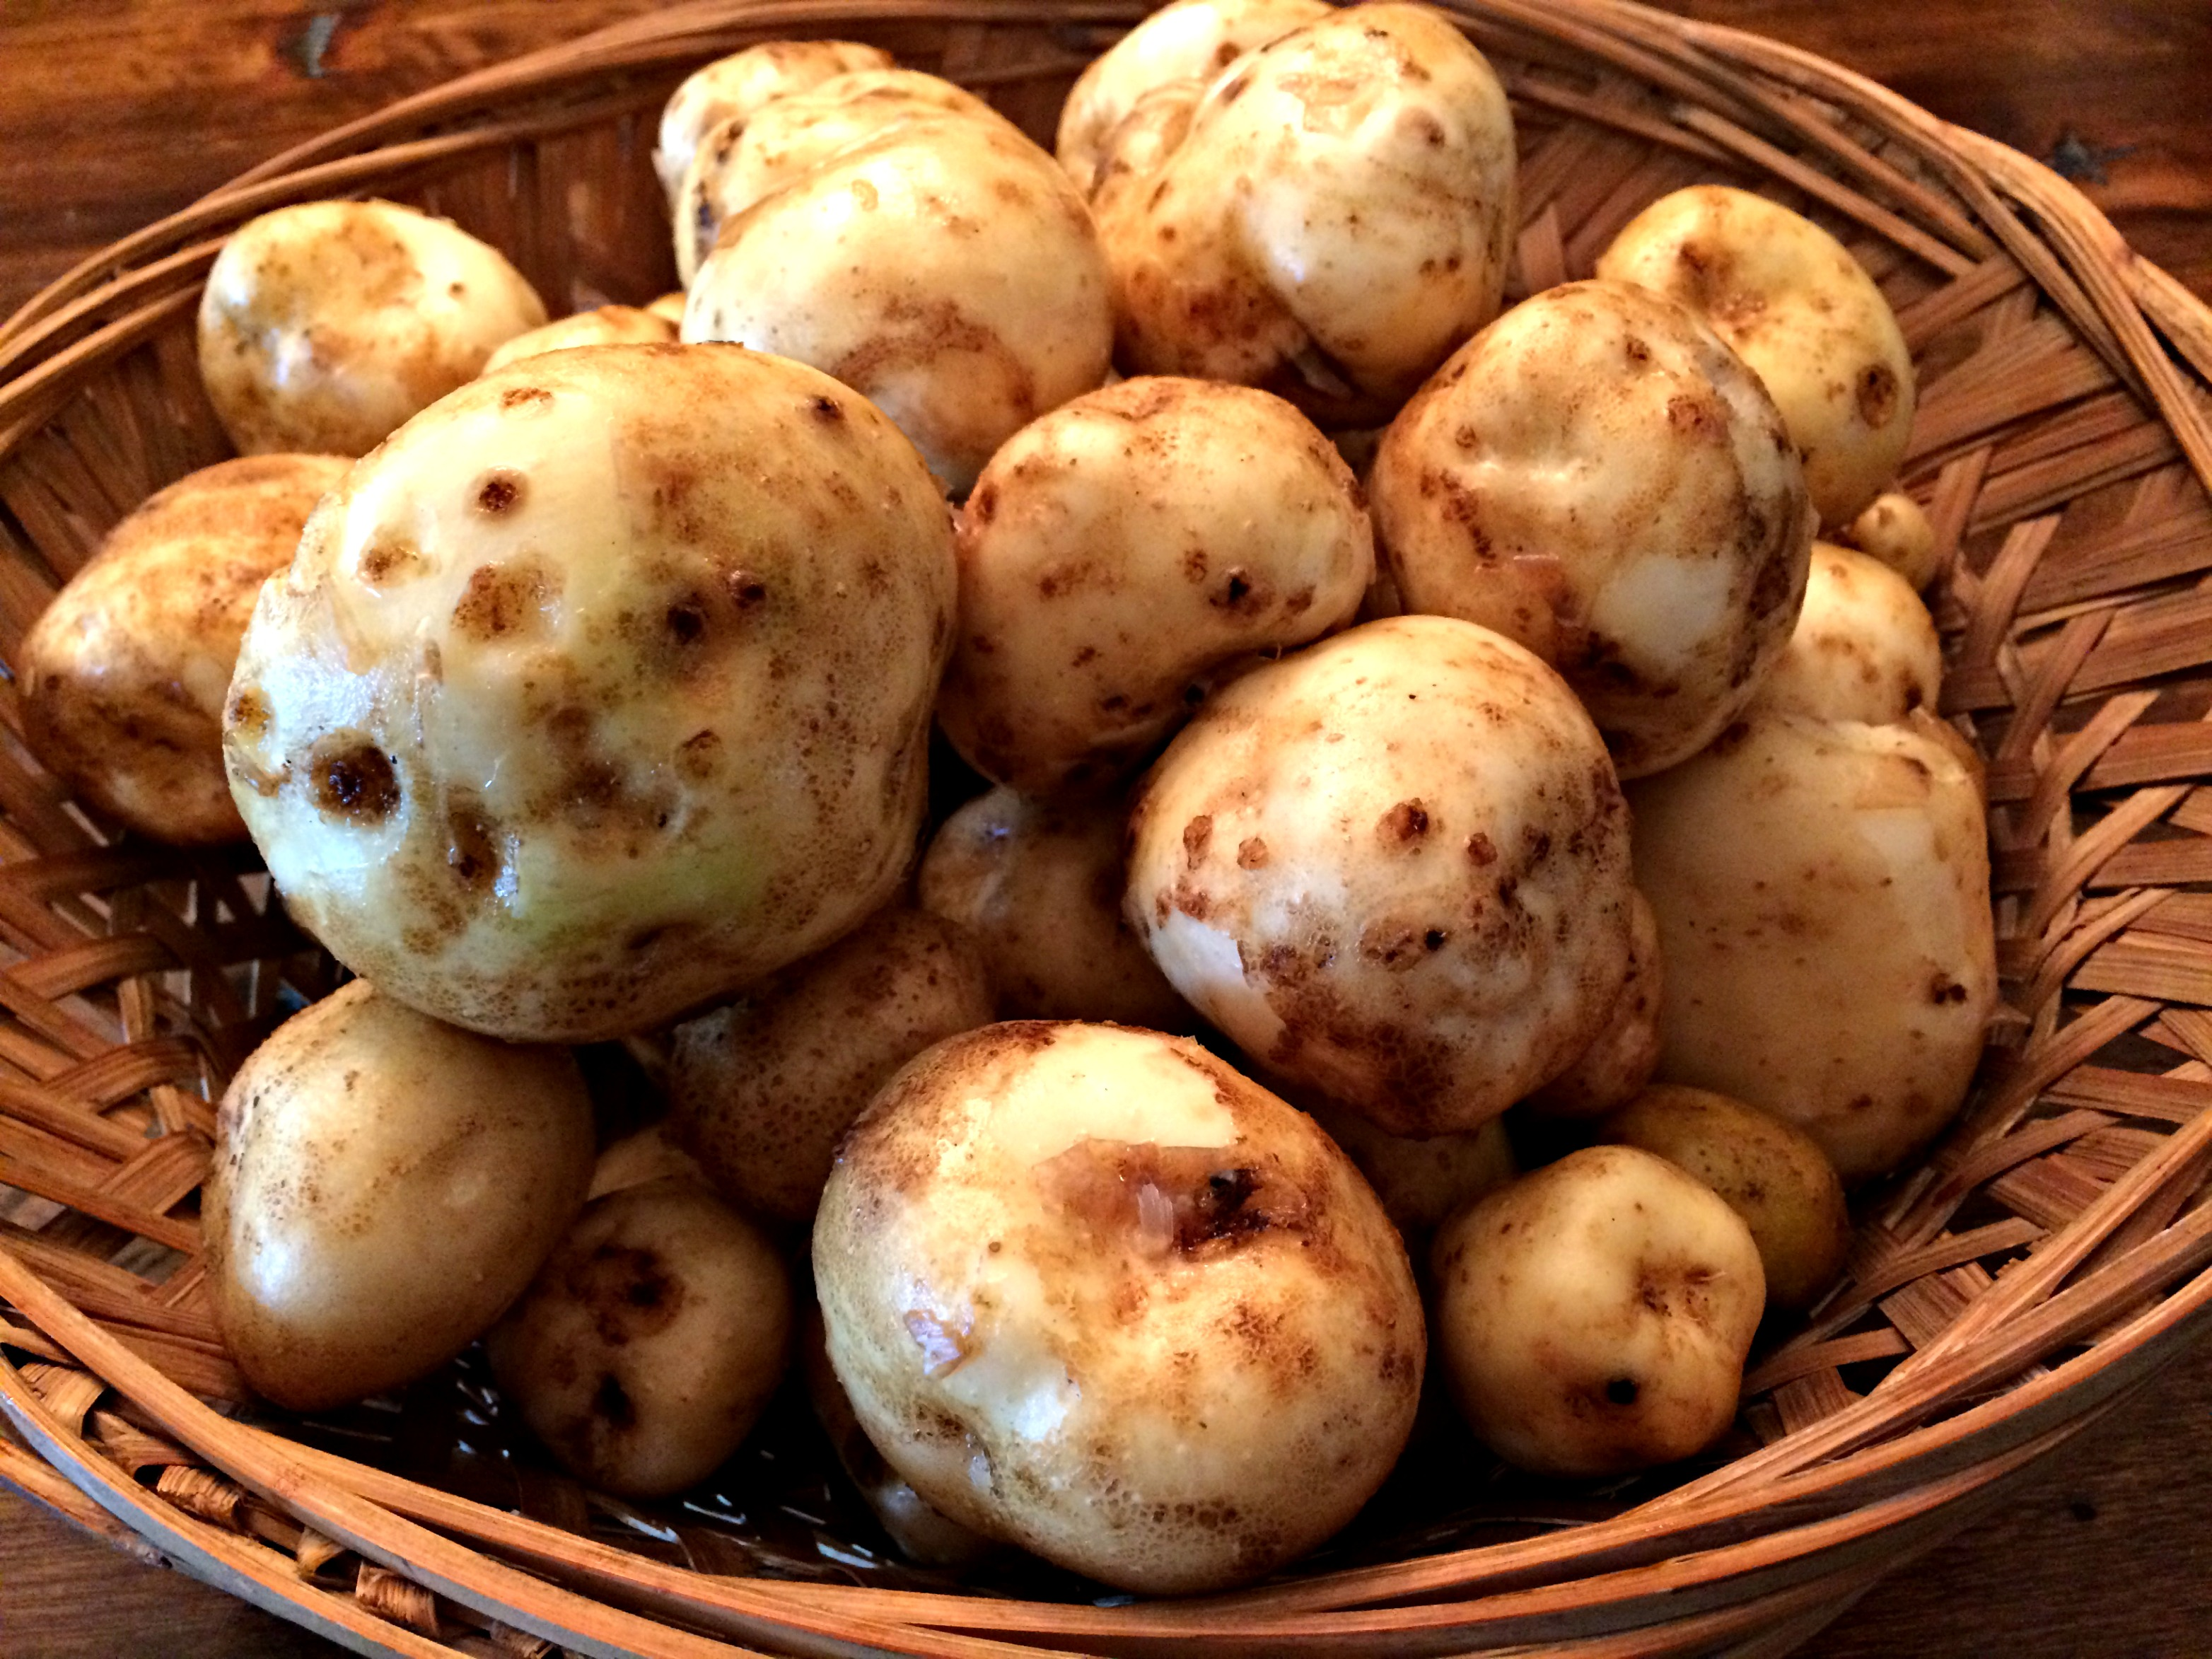 How To Grow Potatoes In A Home Garden Farm Fresh For Life Real Food For Health Wellness